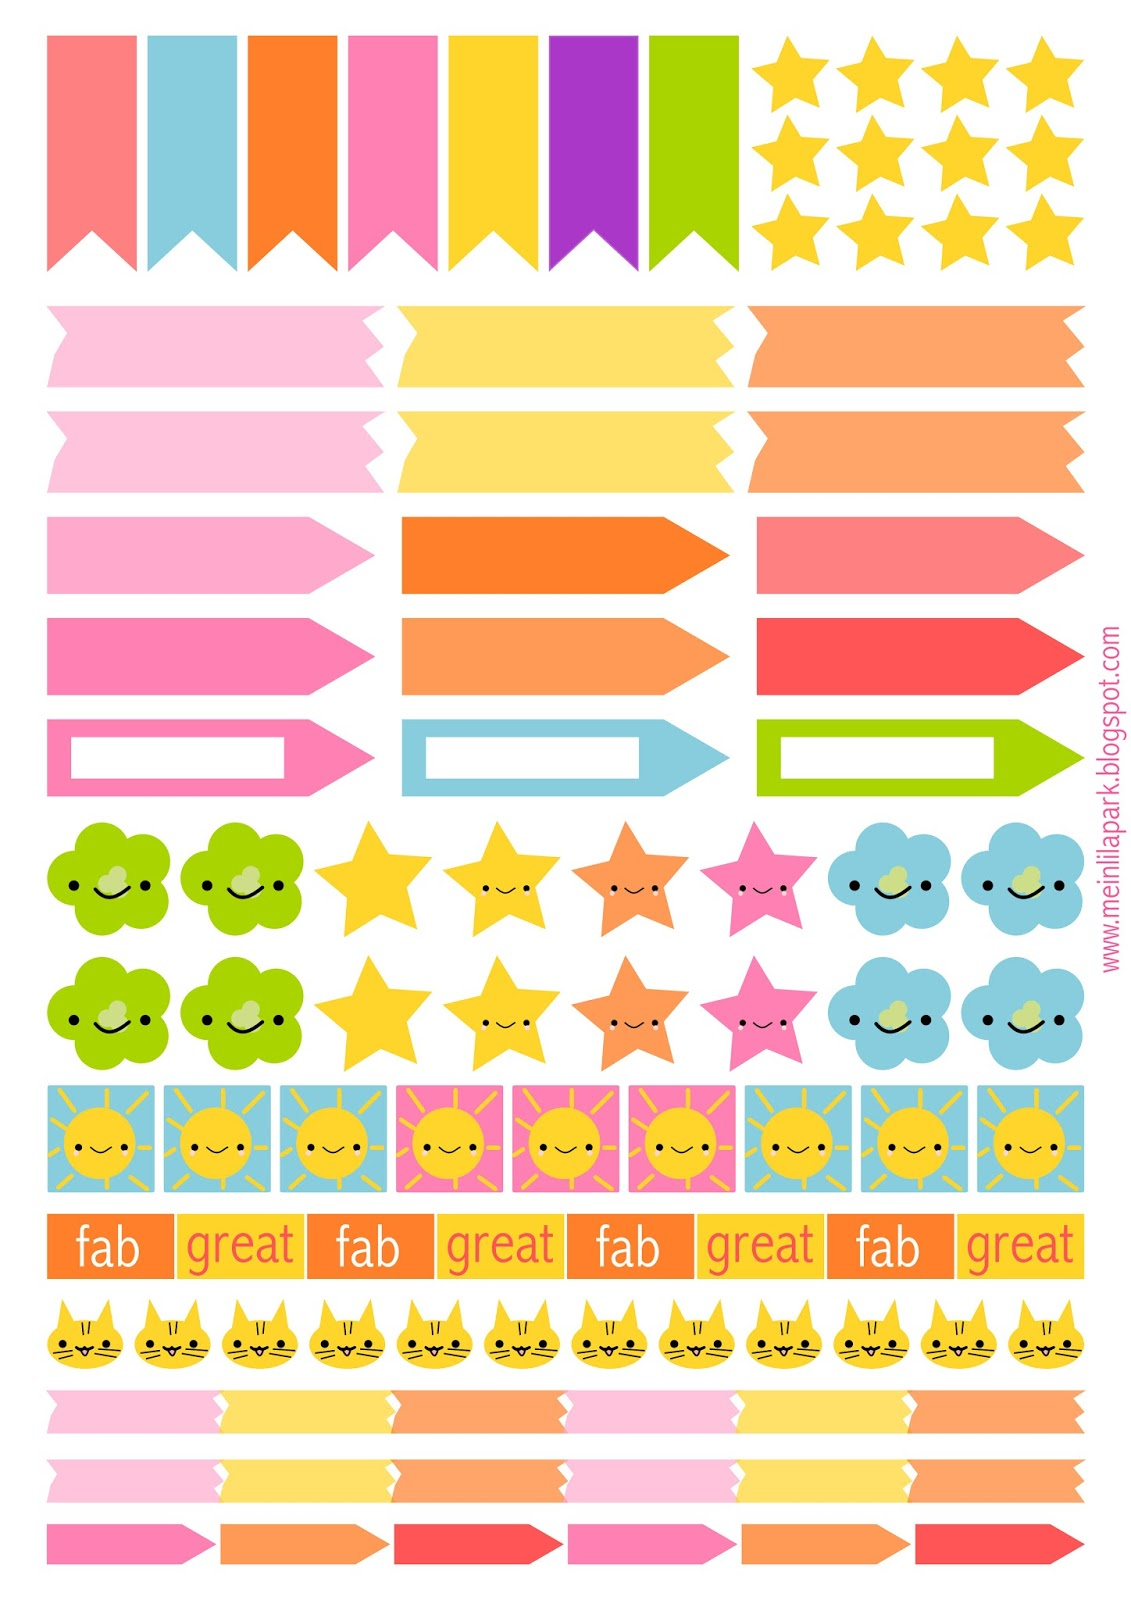 Calendar Planner Stickers : Free printable planner flags and stickers ausdruckbare